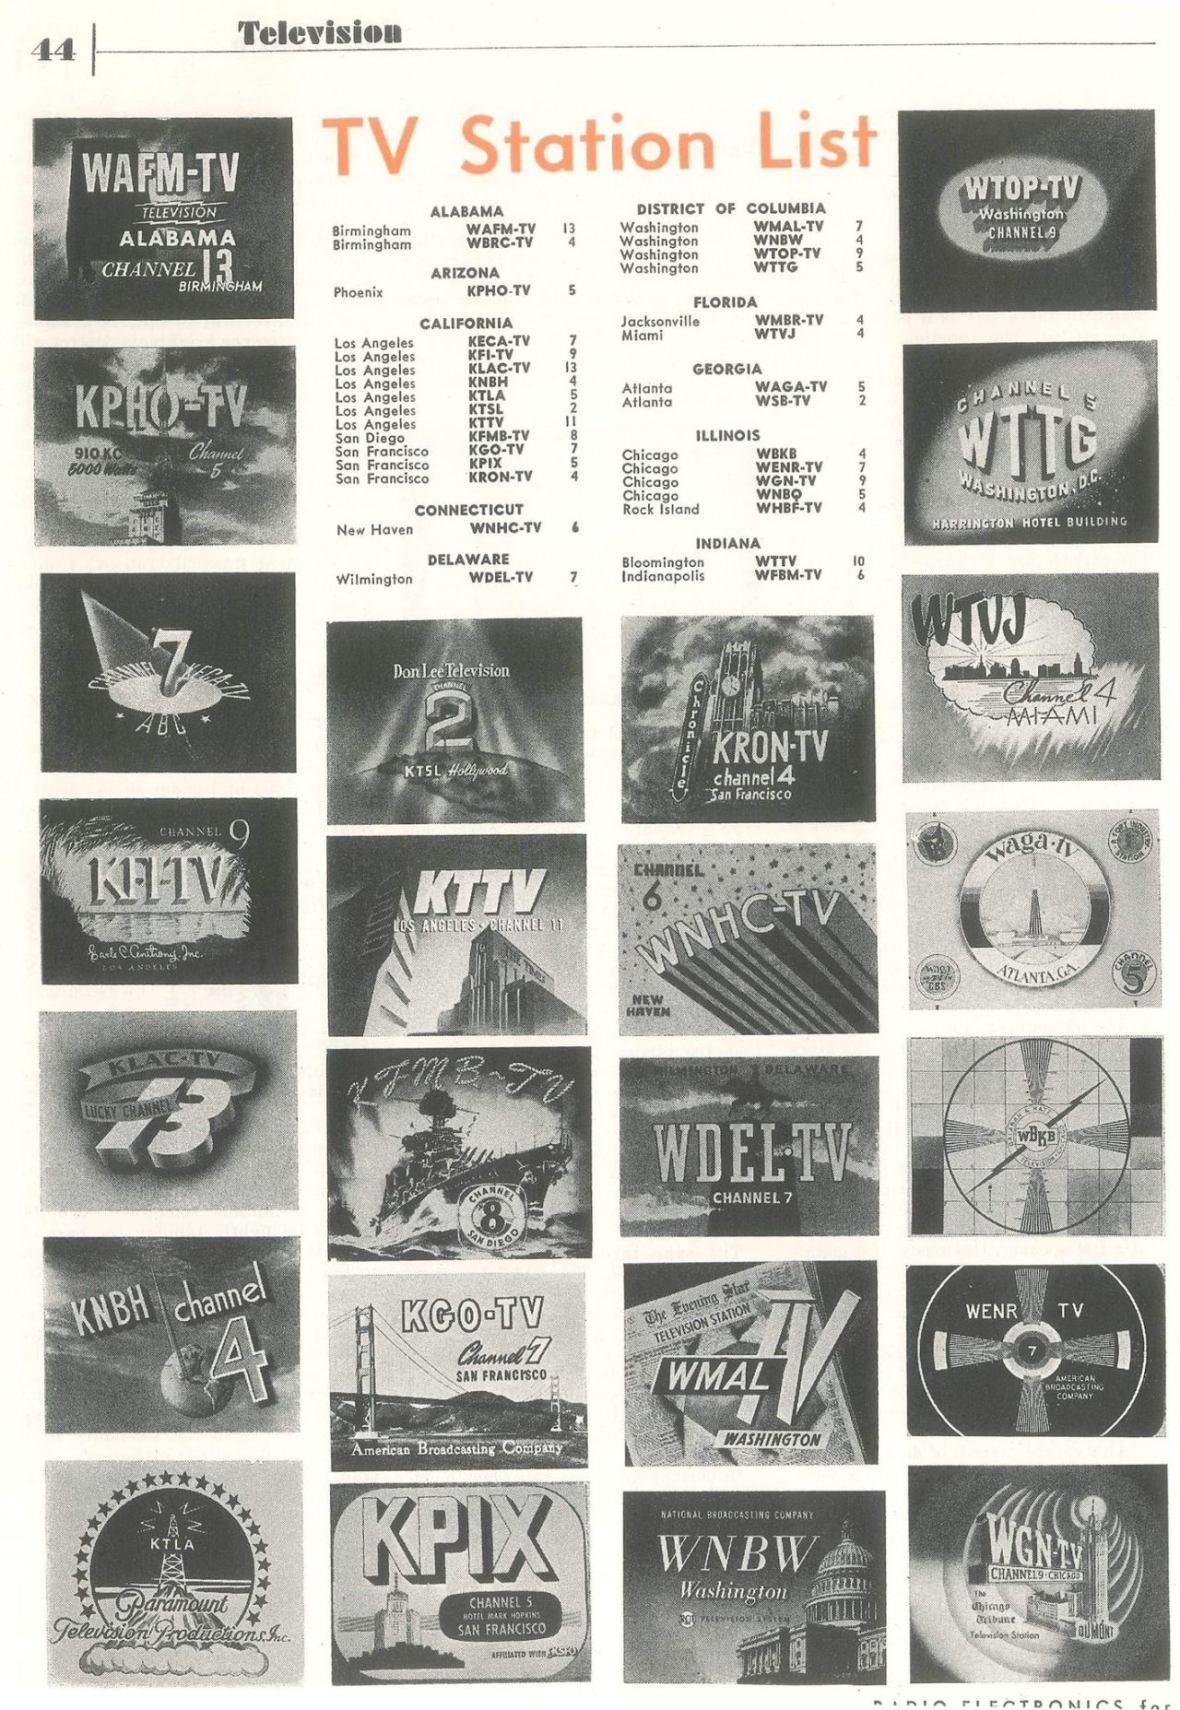 'TV Station List' - page 1 of 4 - published in Radio-Electronics - January 1951